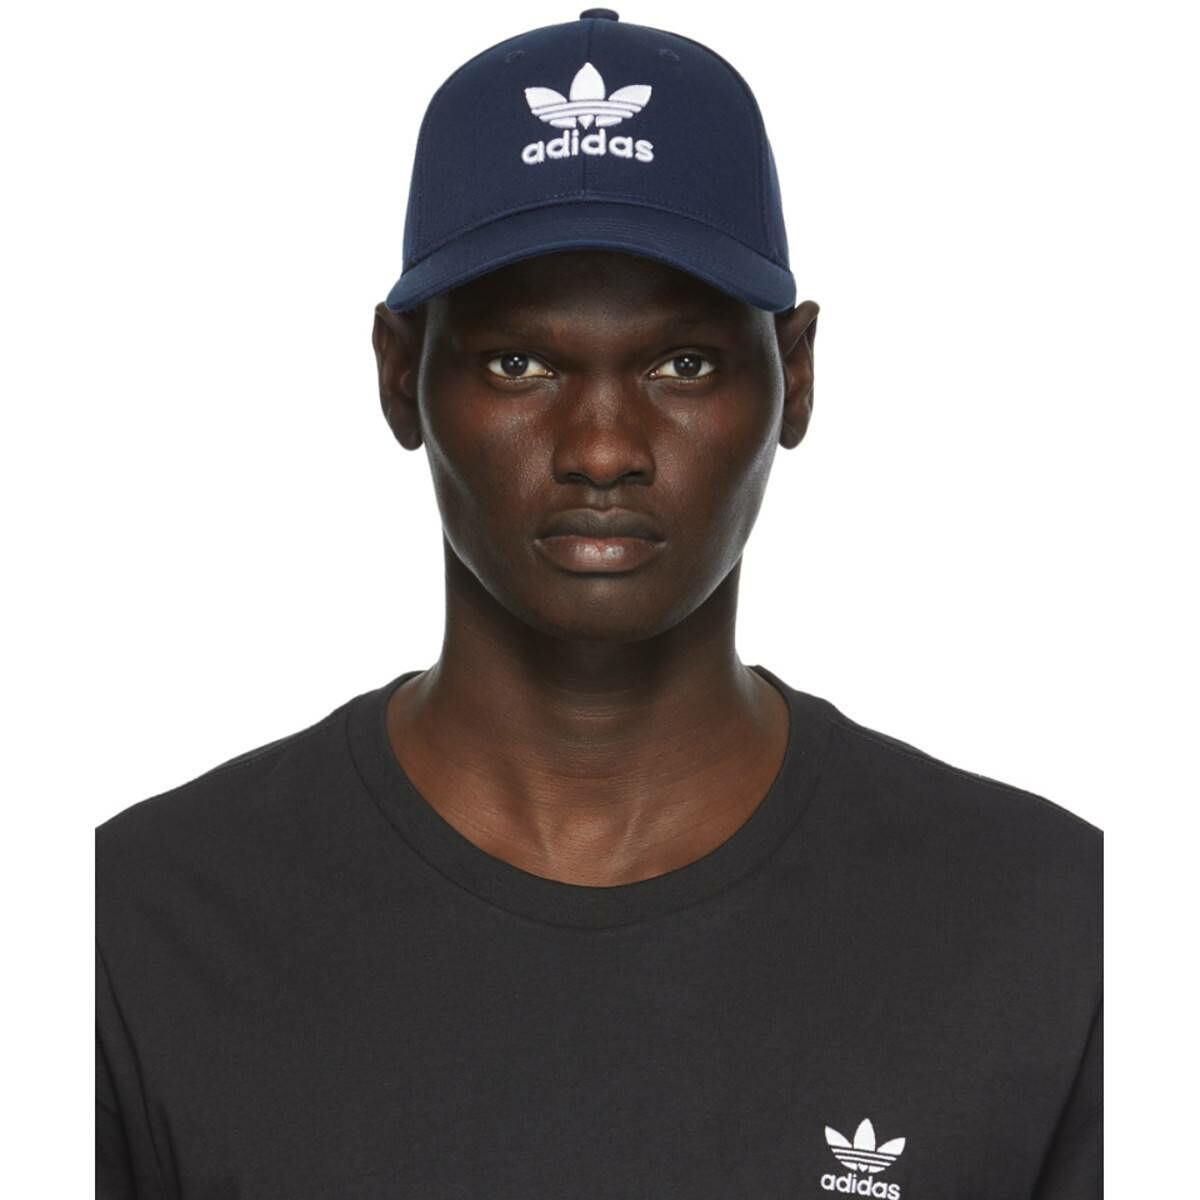 adidas Originals Navy Trefoil Baseball Cap Ssense USA MEN Men ACCESSORIES Mens CAPS